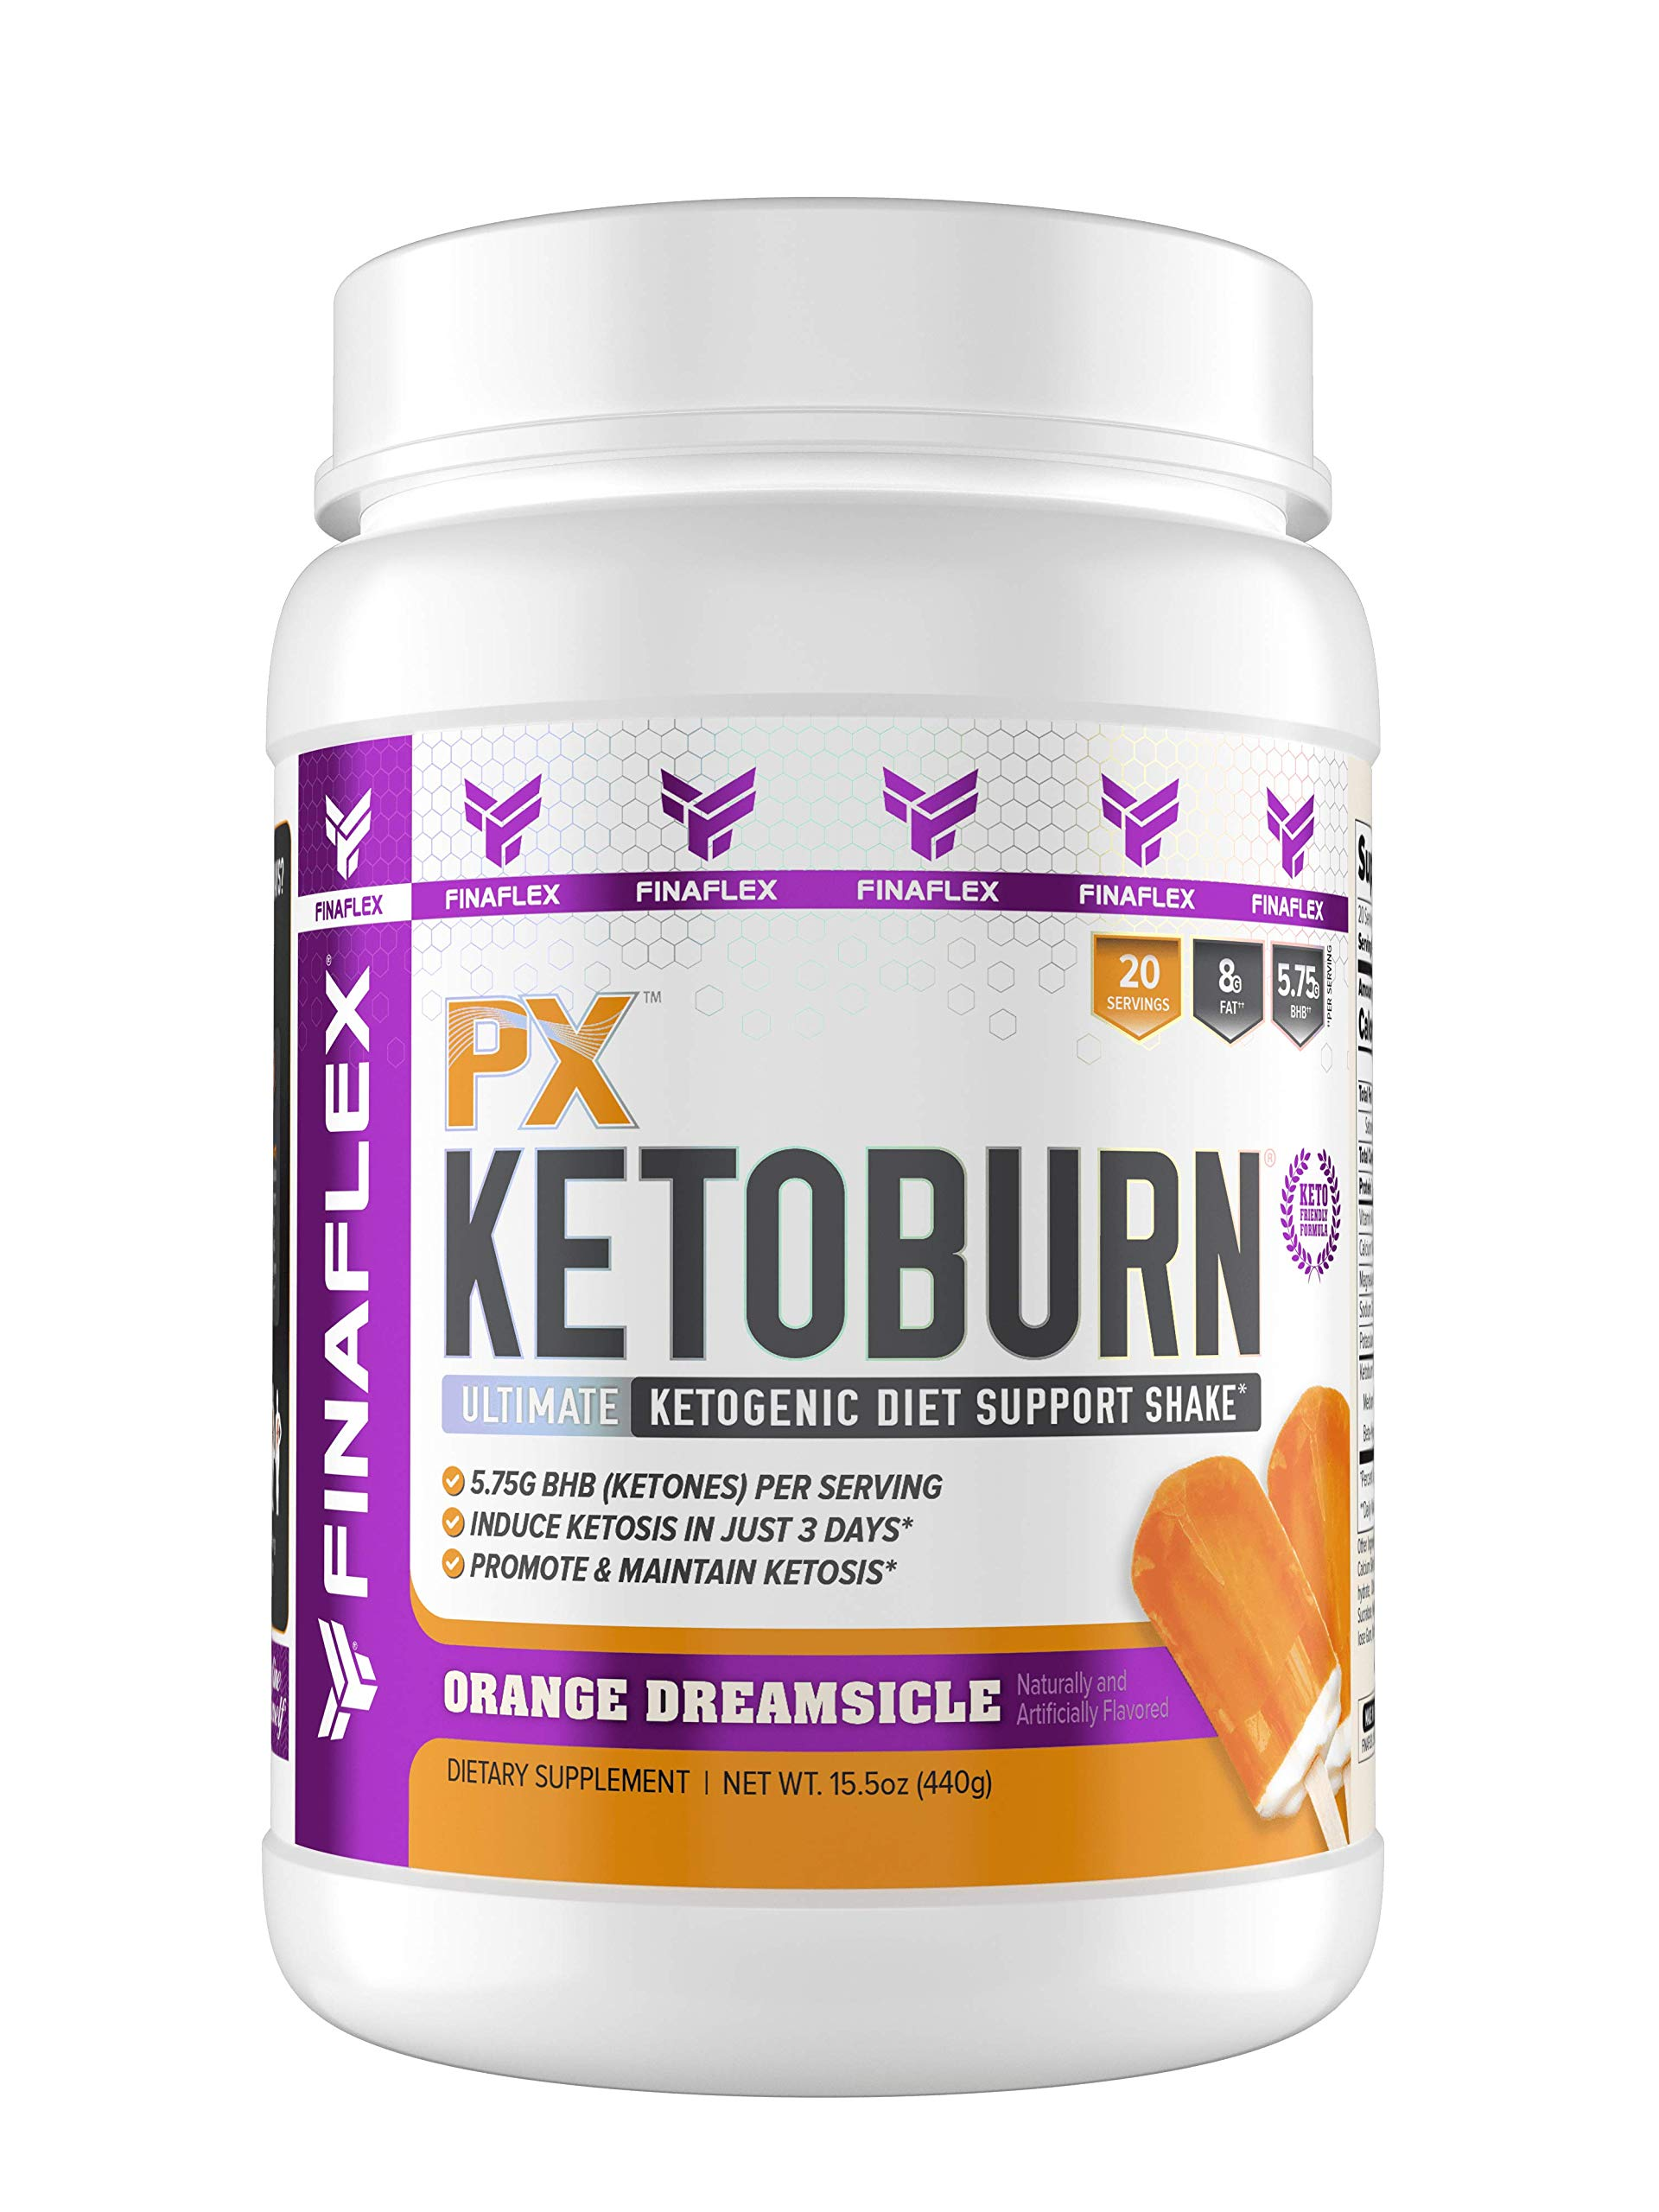 PX Ketoburn, Get in Ketosis in 3 Days, Burn Fat, Ketone Bodies, Macadamia as Fat, Cheat into Keto, Keto Snack, No MCT, No Stomach Discomfort, Ketogenic Diet Friendly (20 Serving, Orange Dreamsicle) by FINAFLEX